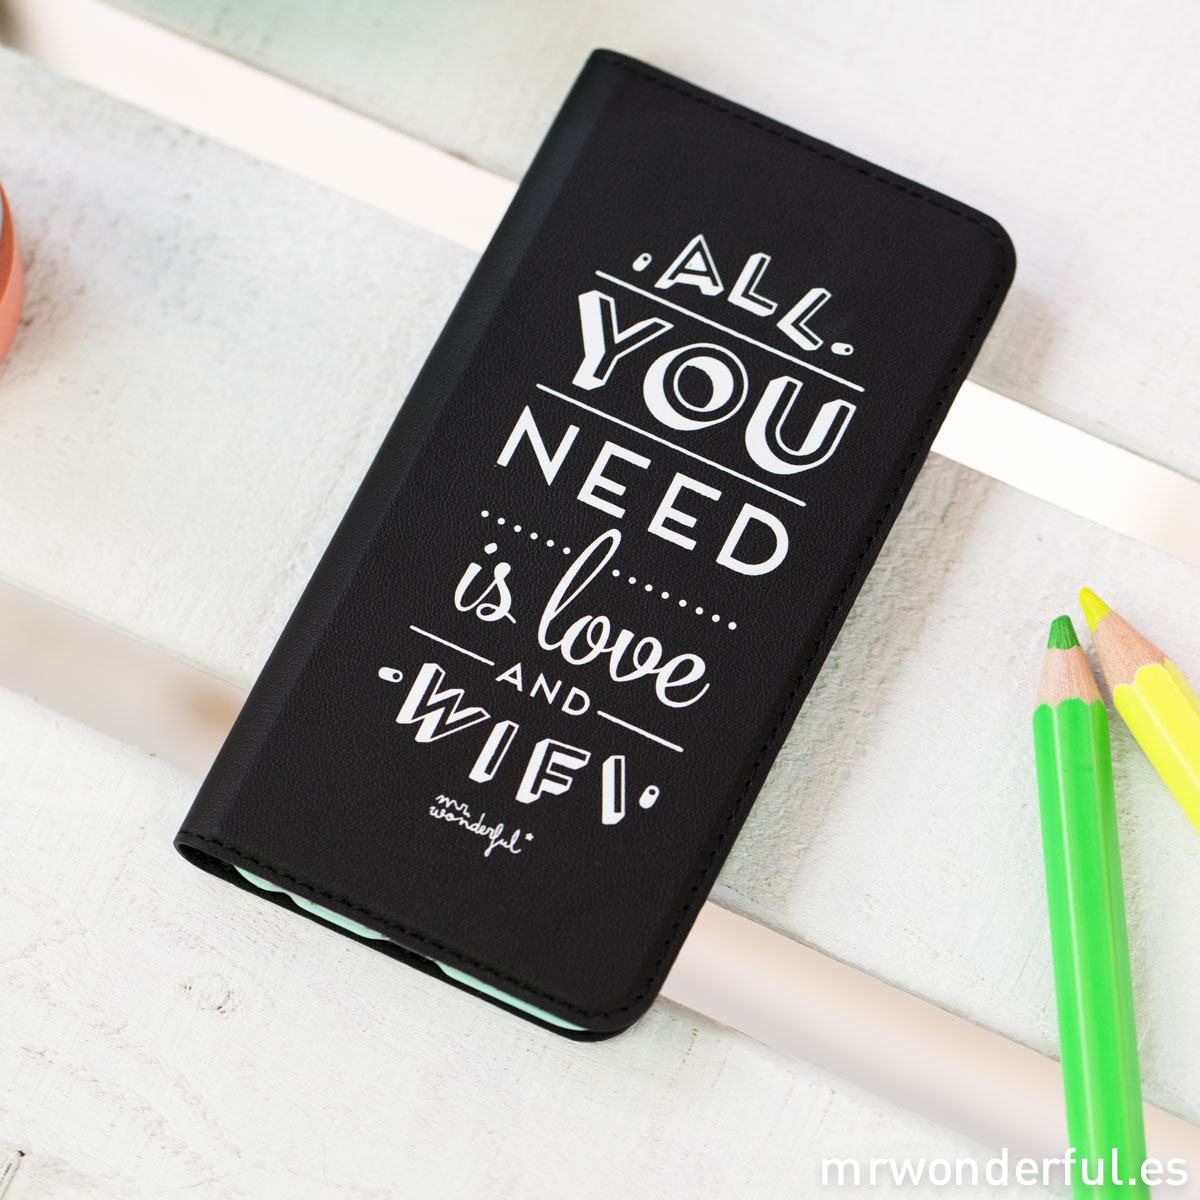 mrwonderful_MRFOL005_Funda-libro-iphone-6_All-you-need-love-wifi-12